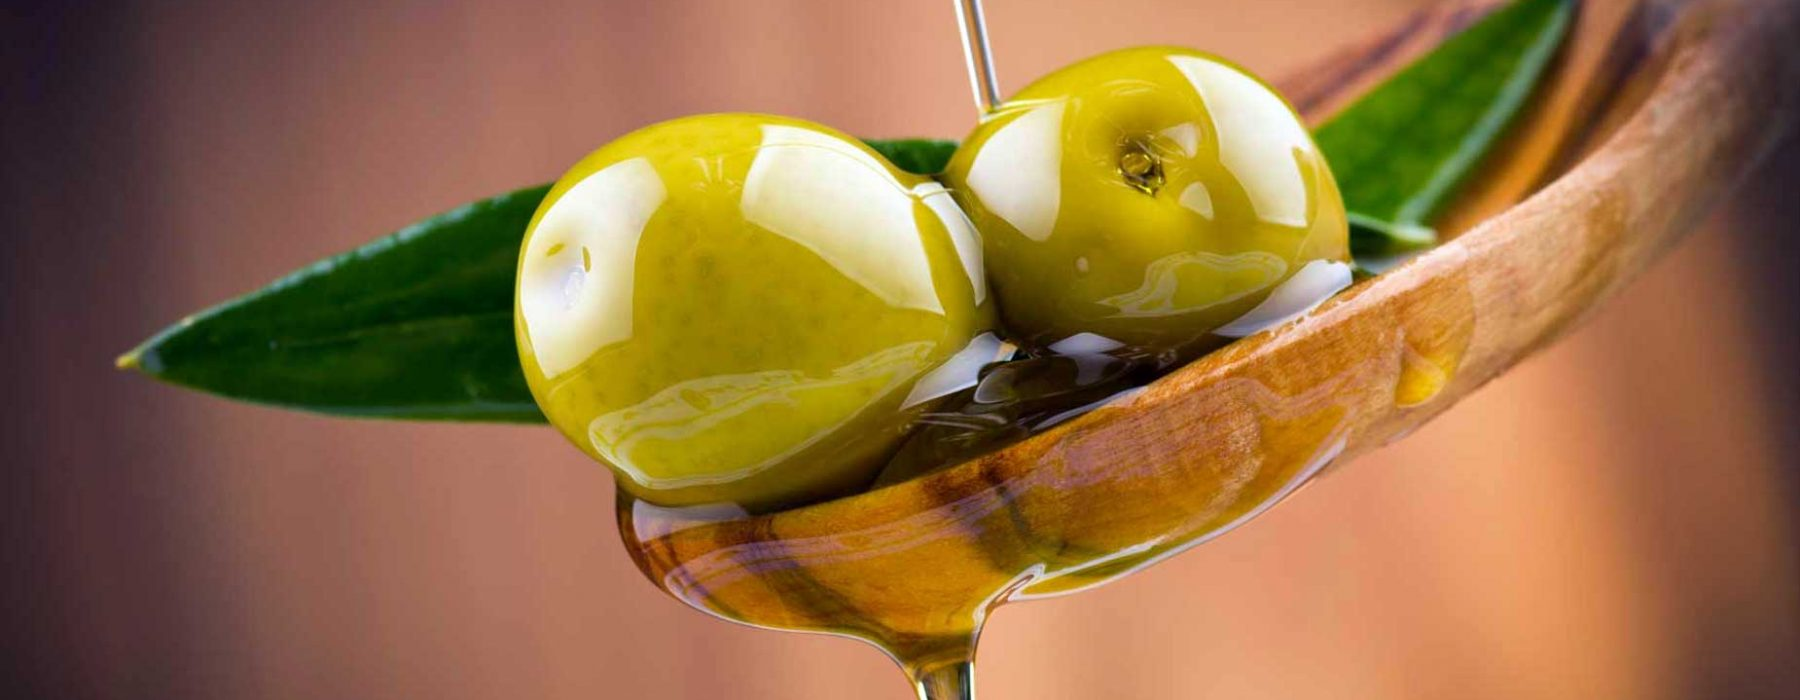 Lazio. The season of oil presses, olives and olive oil